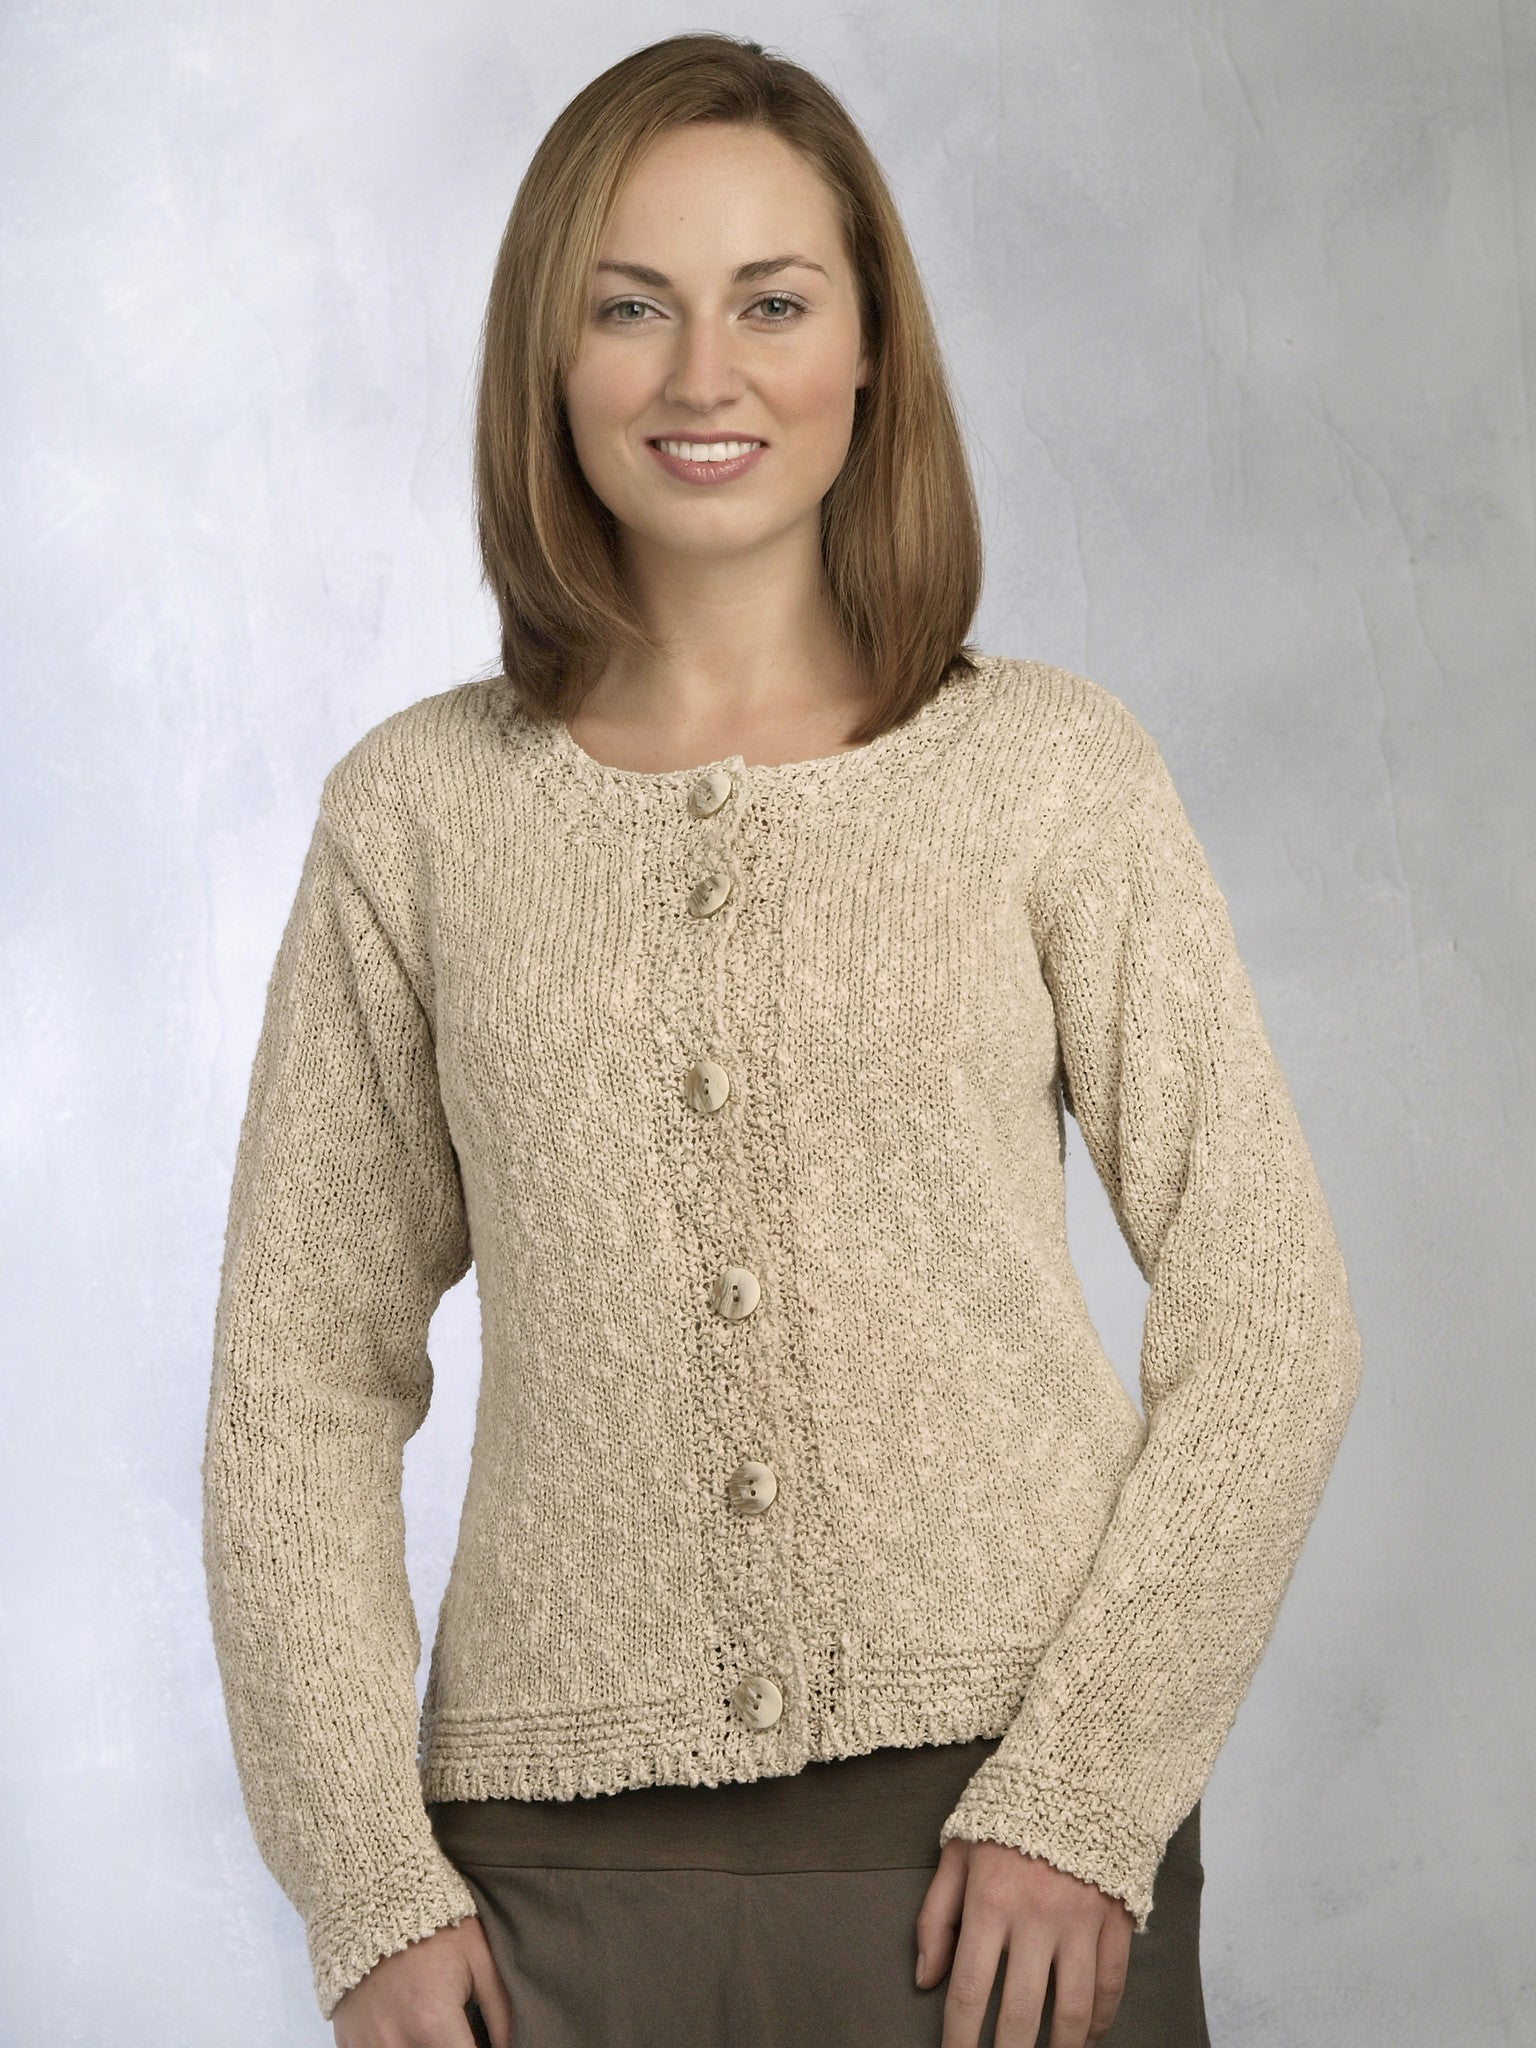 Women's Linen Cotton Knitted Cardigan - Natural